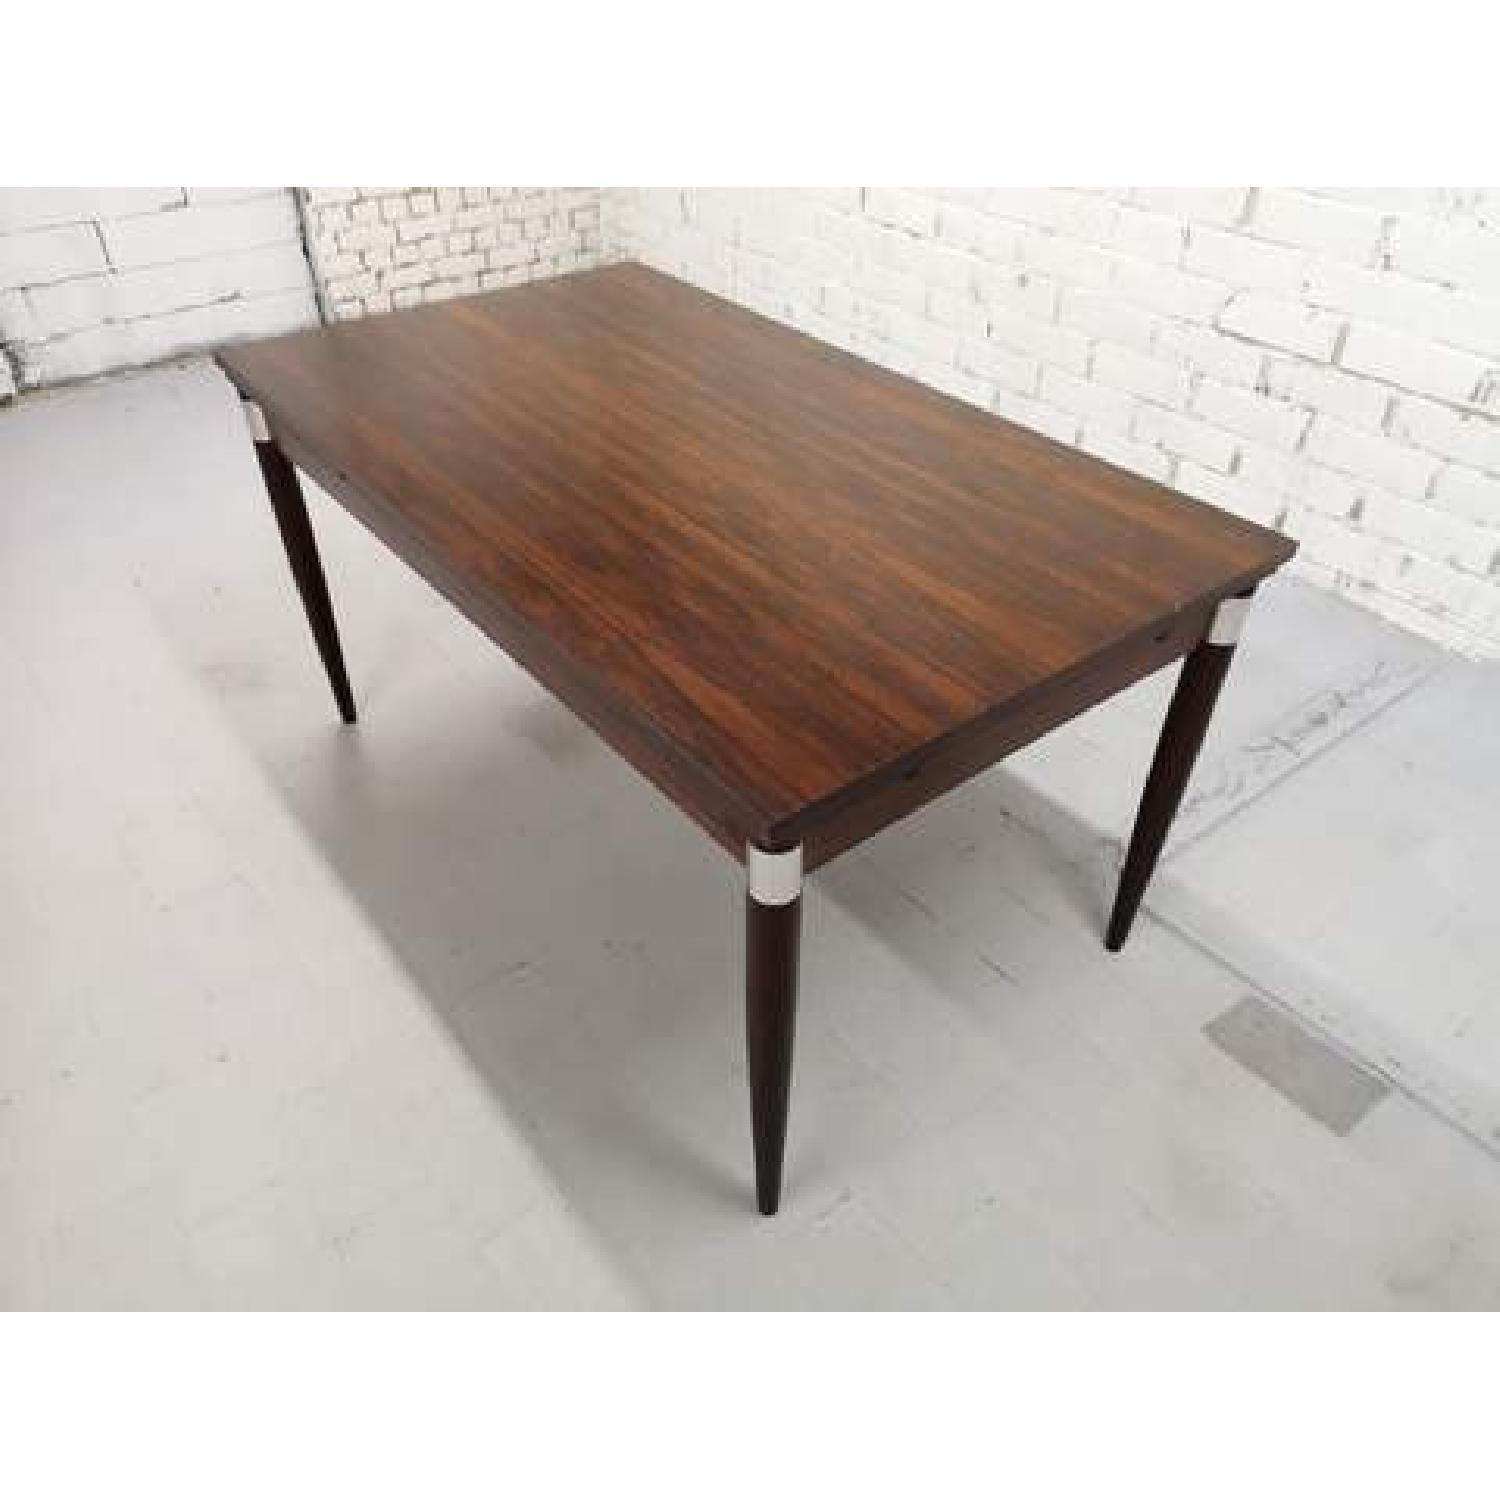 Mid-Century Modern Design Extendable Draw Leaf Dining Table - image-9